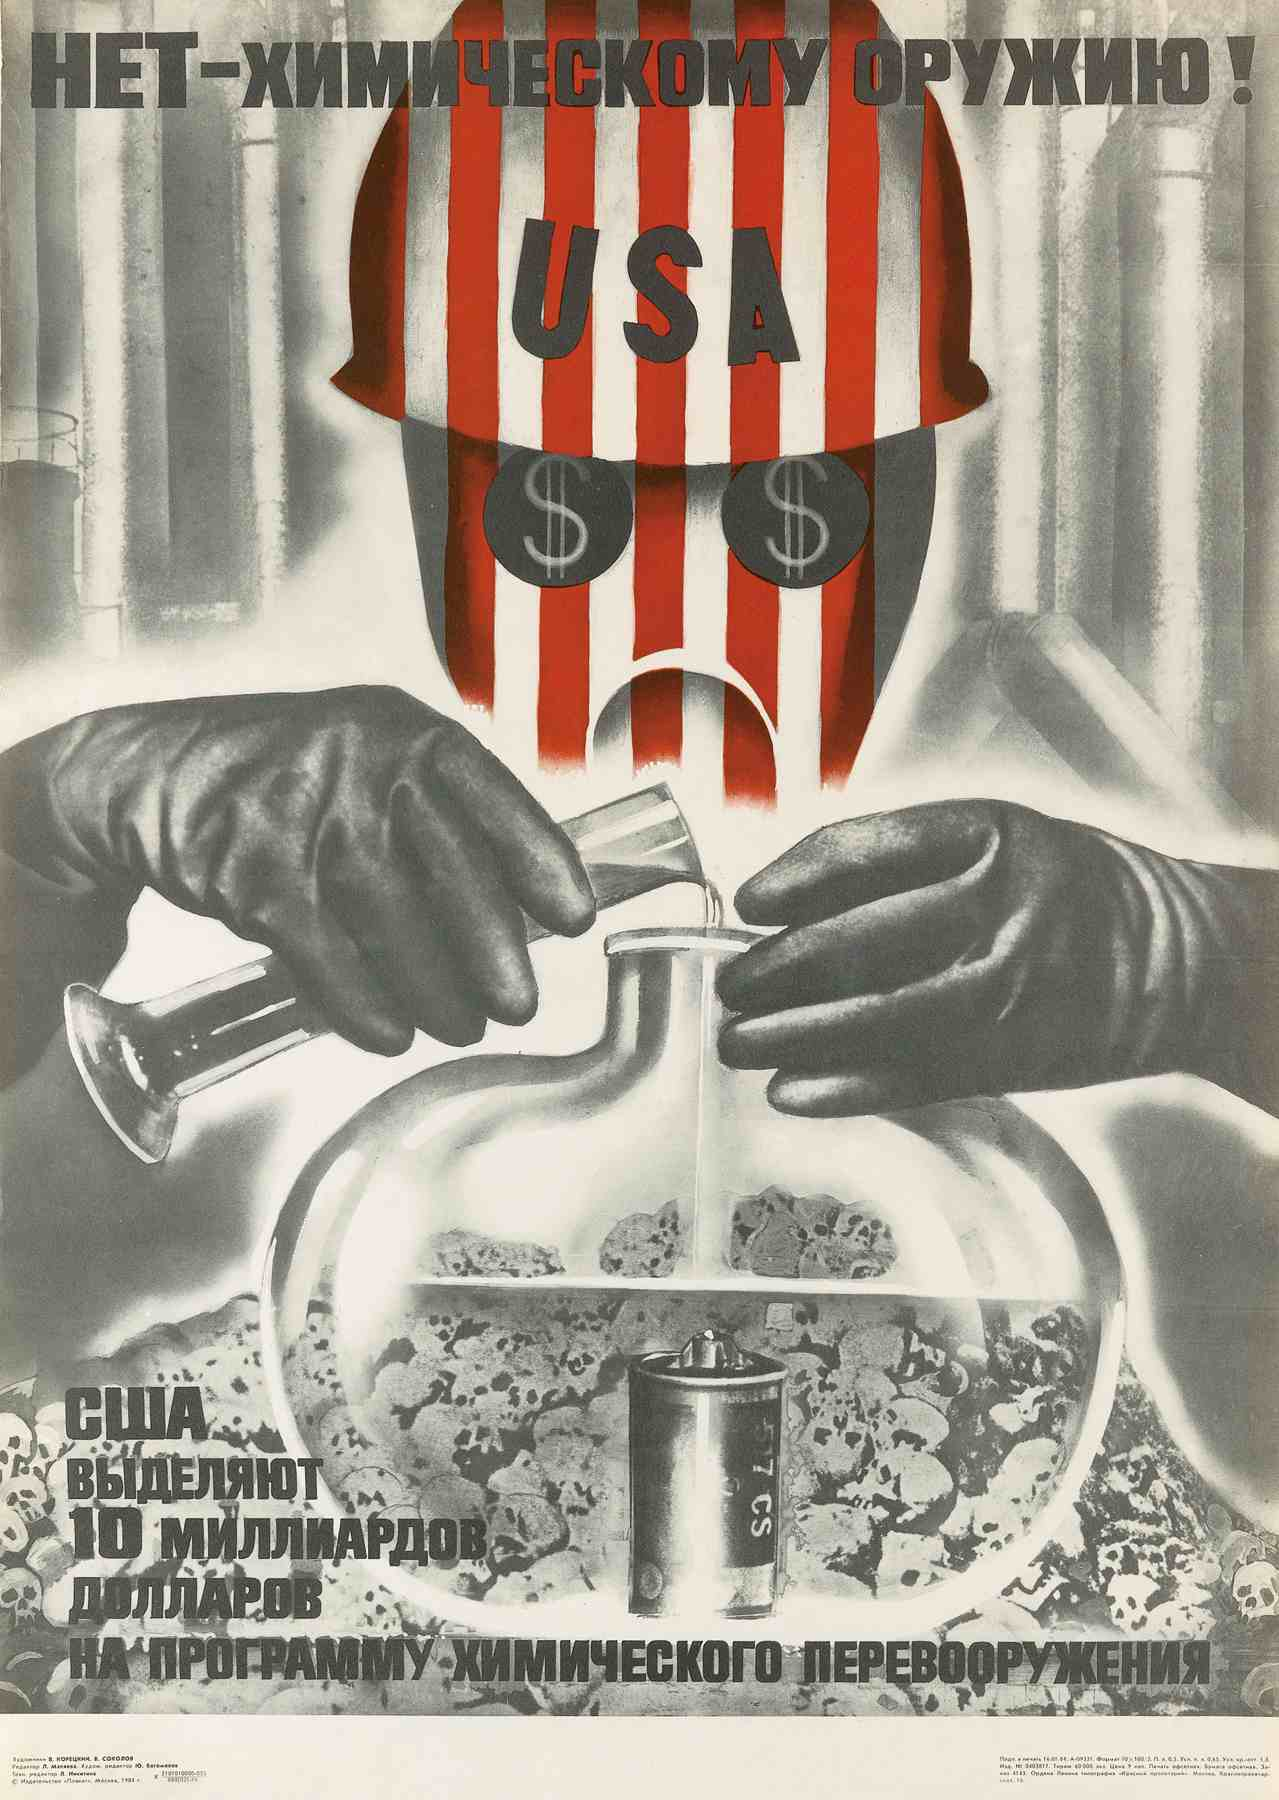 %22No to Chemical Weapons!%22 poster by Viktor Koretsky, 1984